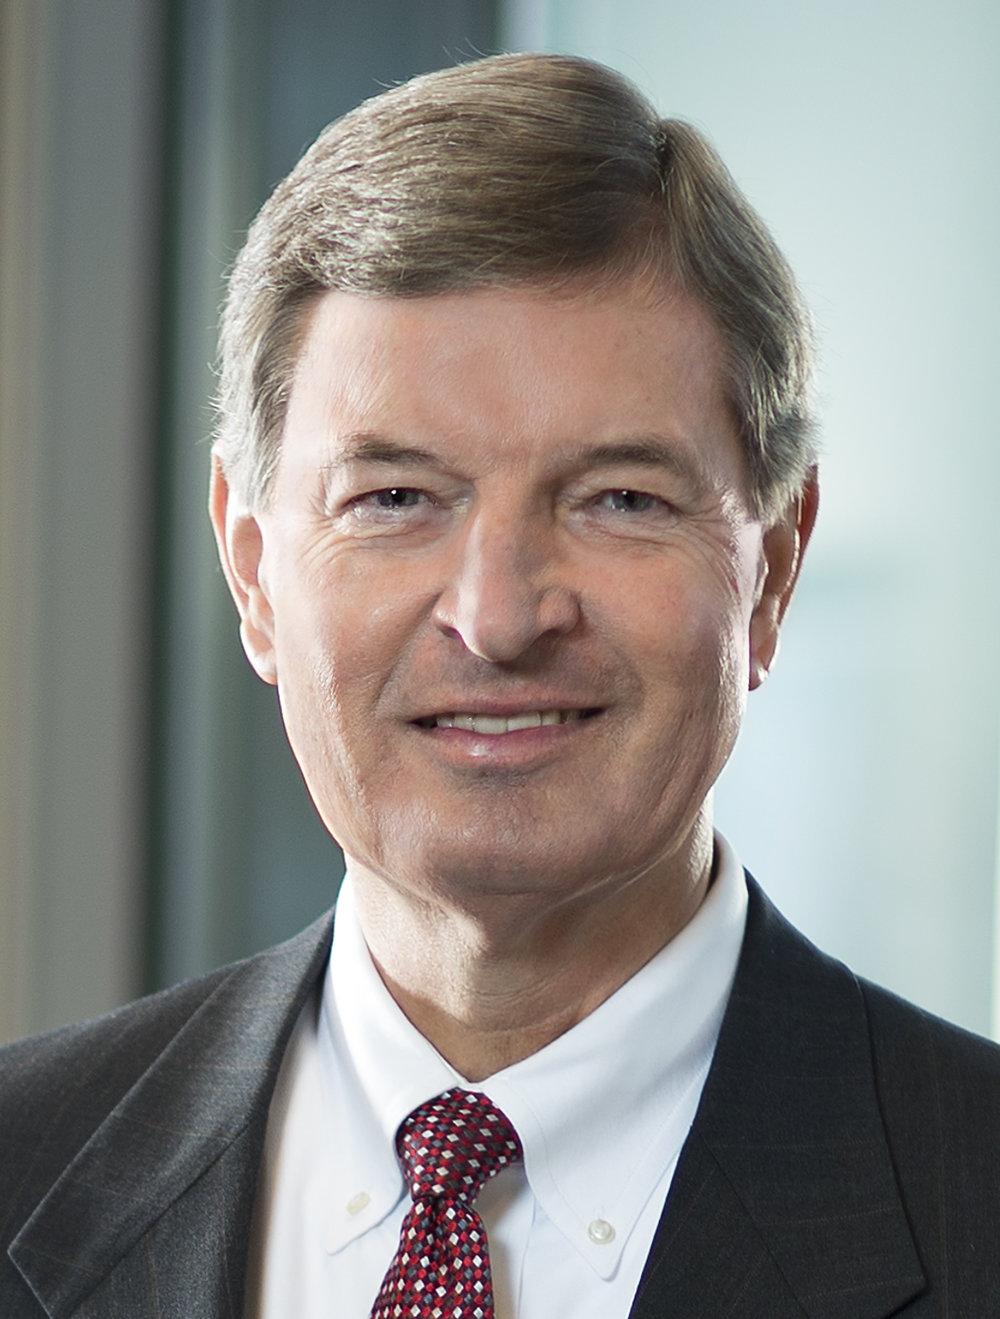 BBT Chairman and CEO Kelly King Portrait 12_2015.jpg